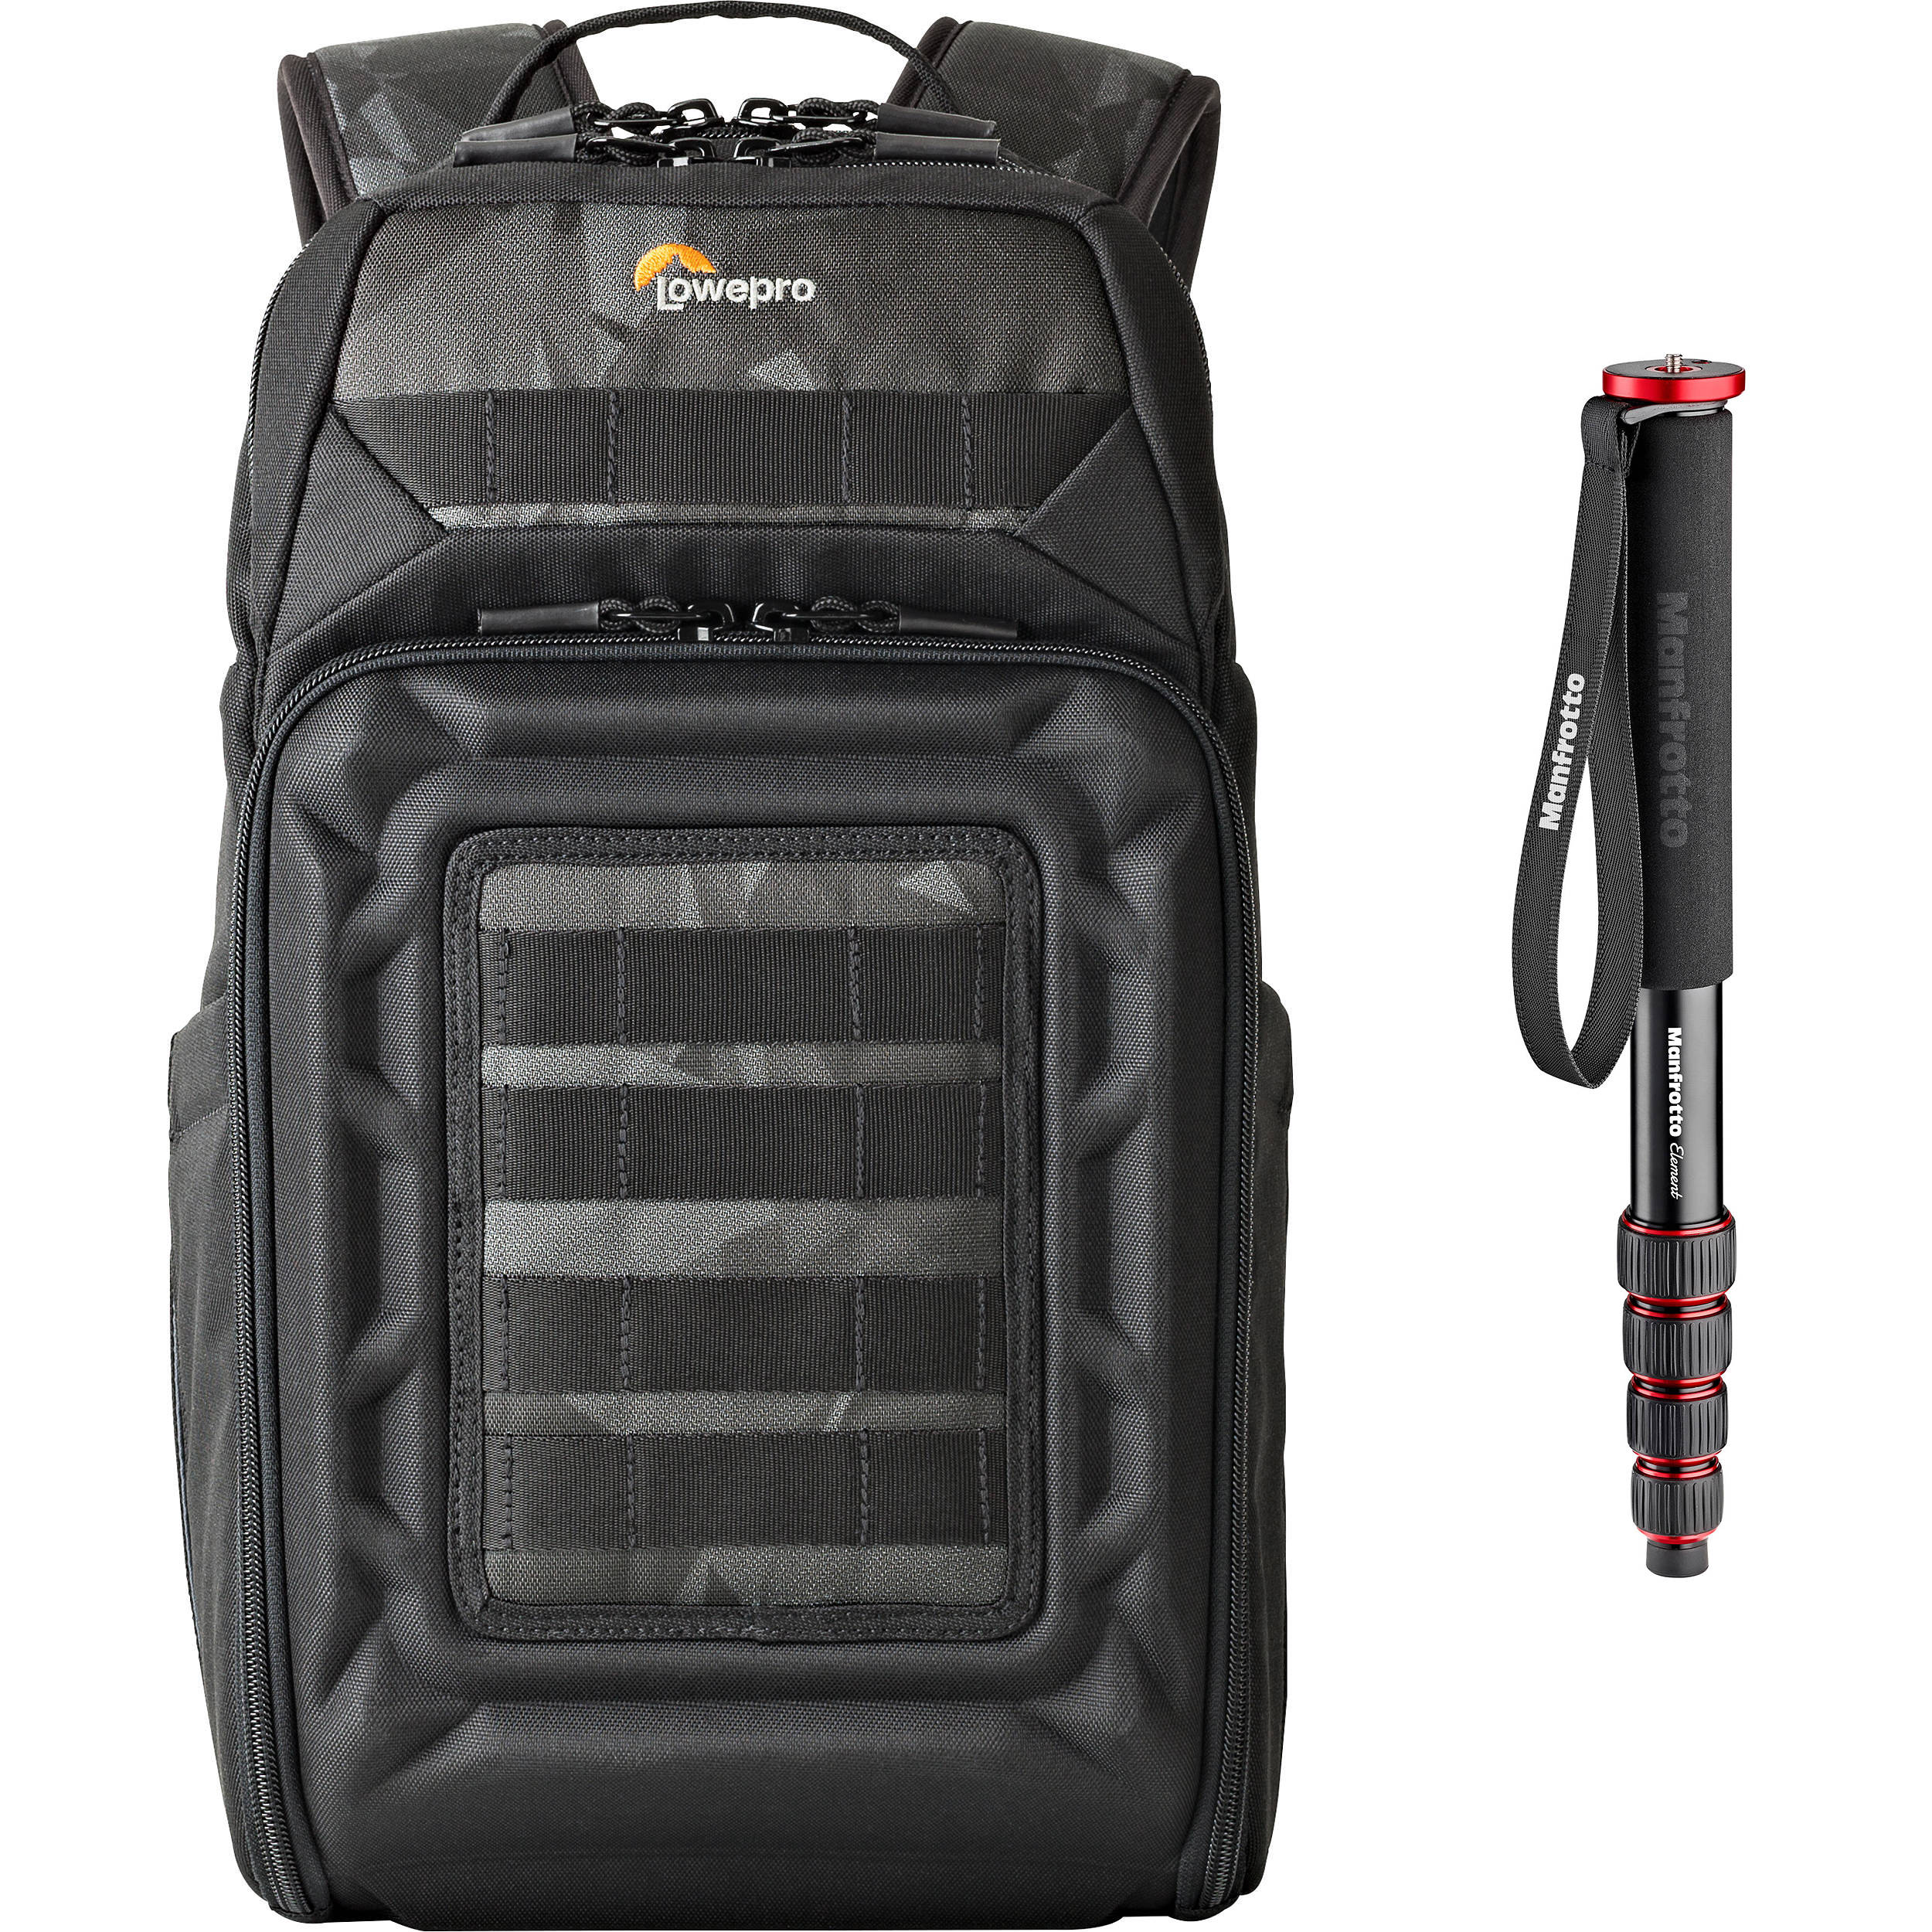 9c6d31e4773 Lowepro DroneGuard BP 200 Backpack for DJI Mavic Pro/Air with Manfrotto  Monopod